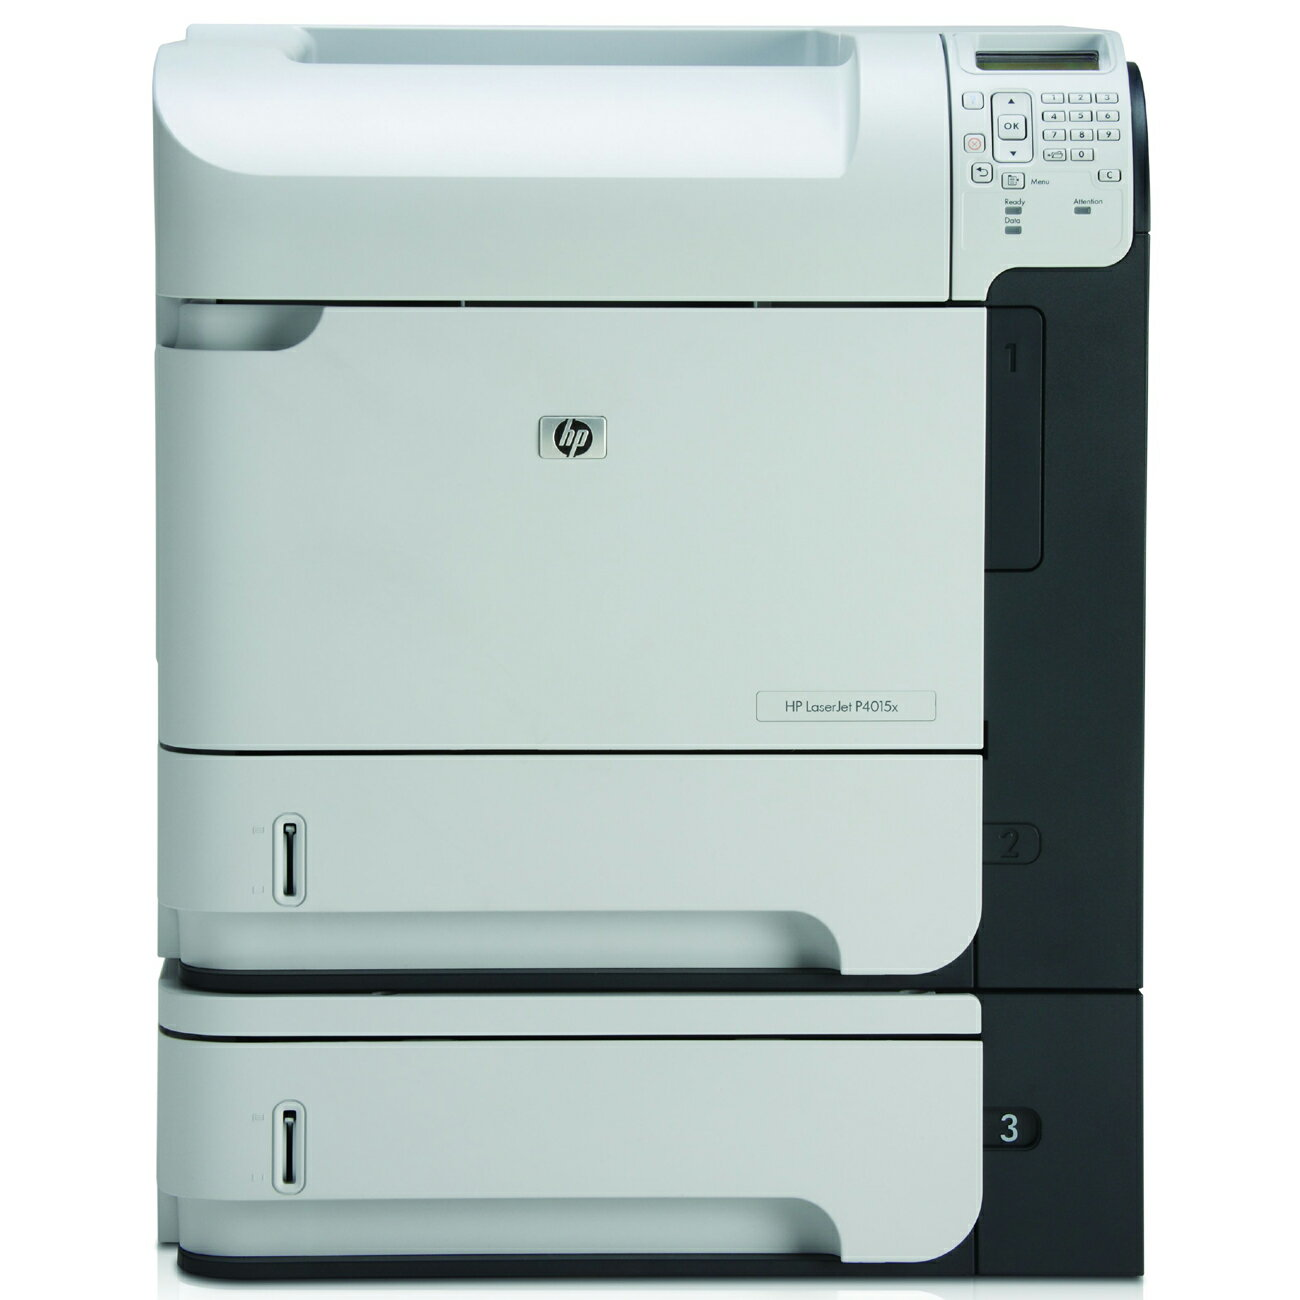 HP LaserJet P4515X Laser Printer - Monochrome - 1200 x 1200 dpi Print - Plain Paper Print - Desktop - 62 ppm Mono Print - Letter, Legal, Executive, Statement, Com10 Envelope, Monarch Envelope, Custom Size - 1100 sheets Standard Input Capacity - 275000 Dut 0